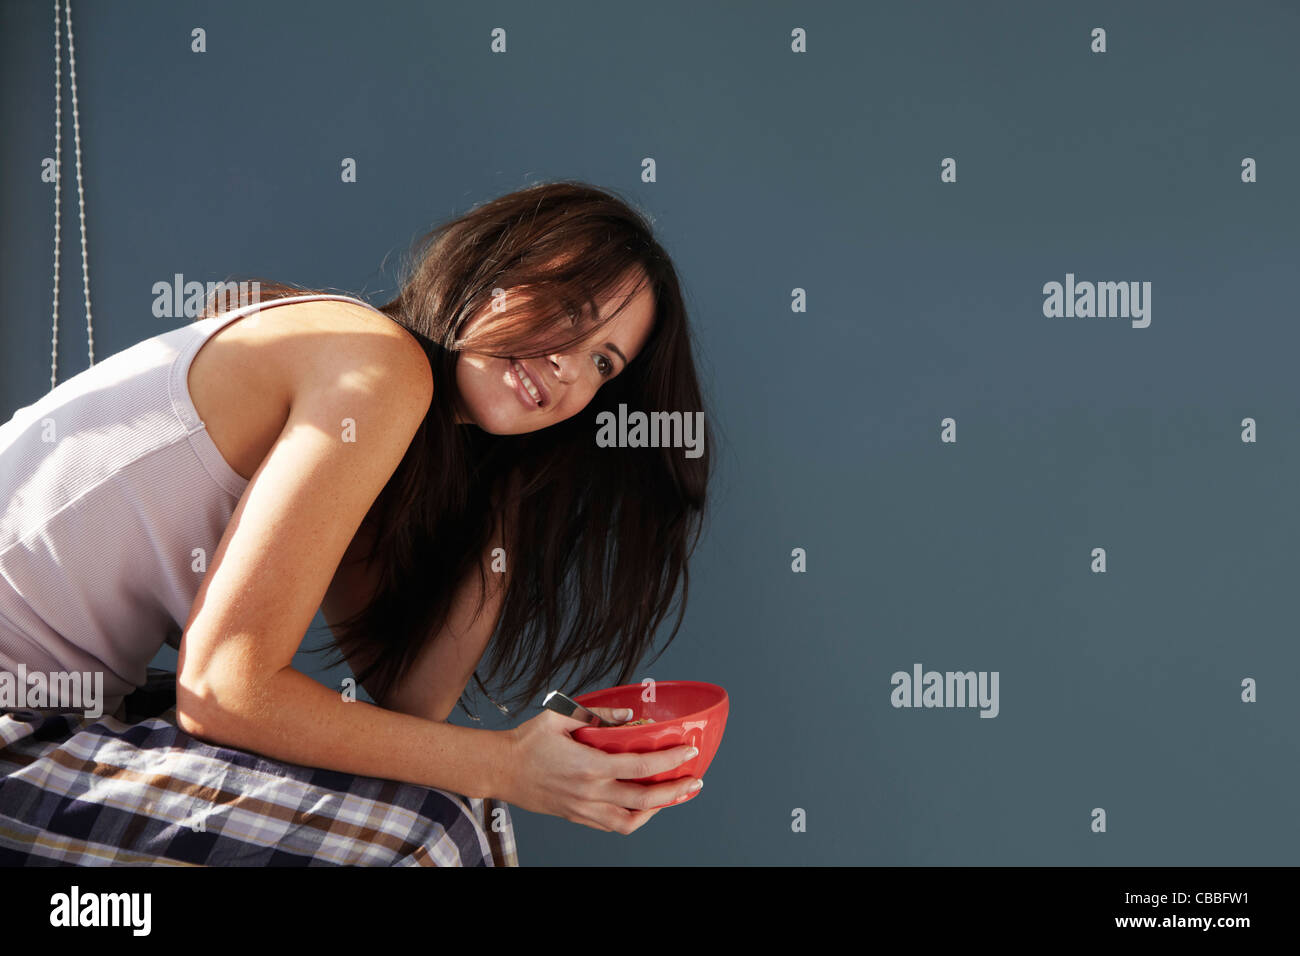 Smiling woman eating bowl of cereal - Stock Image